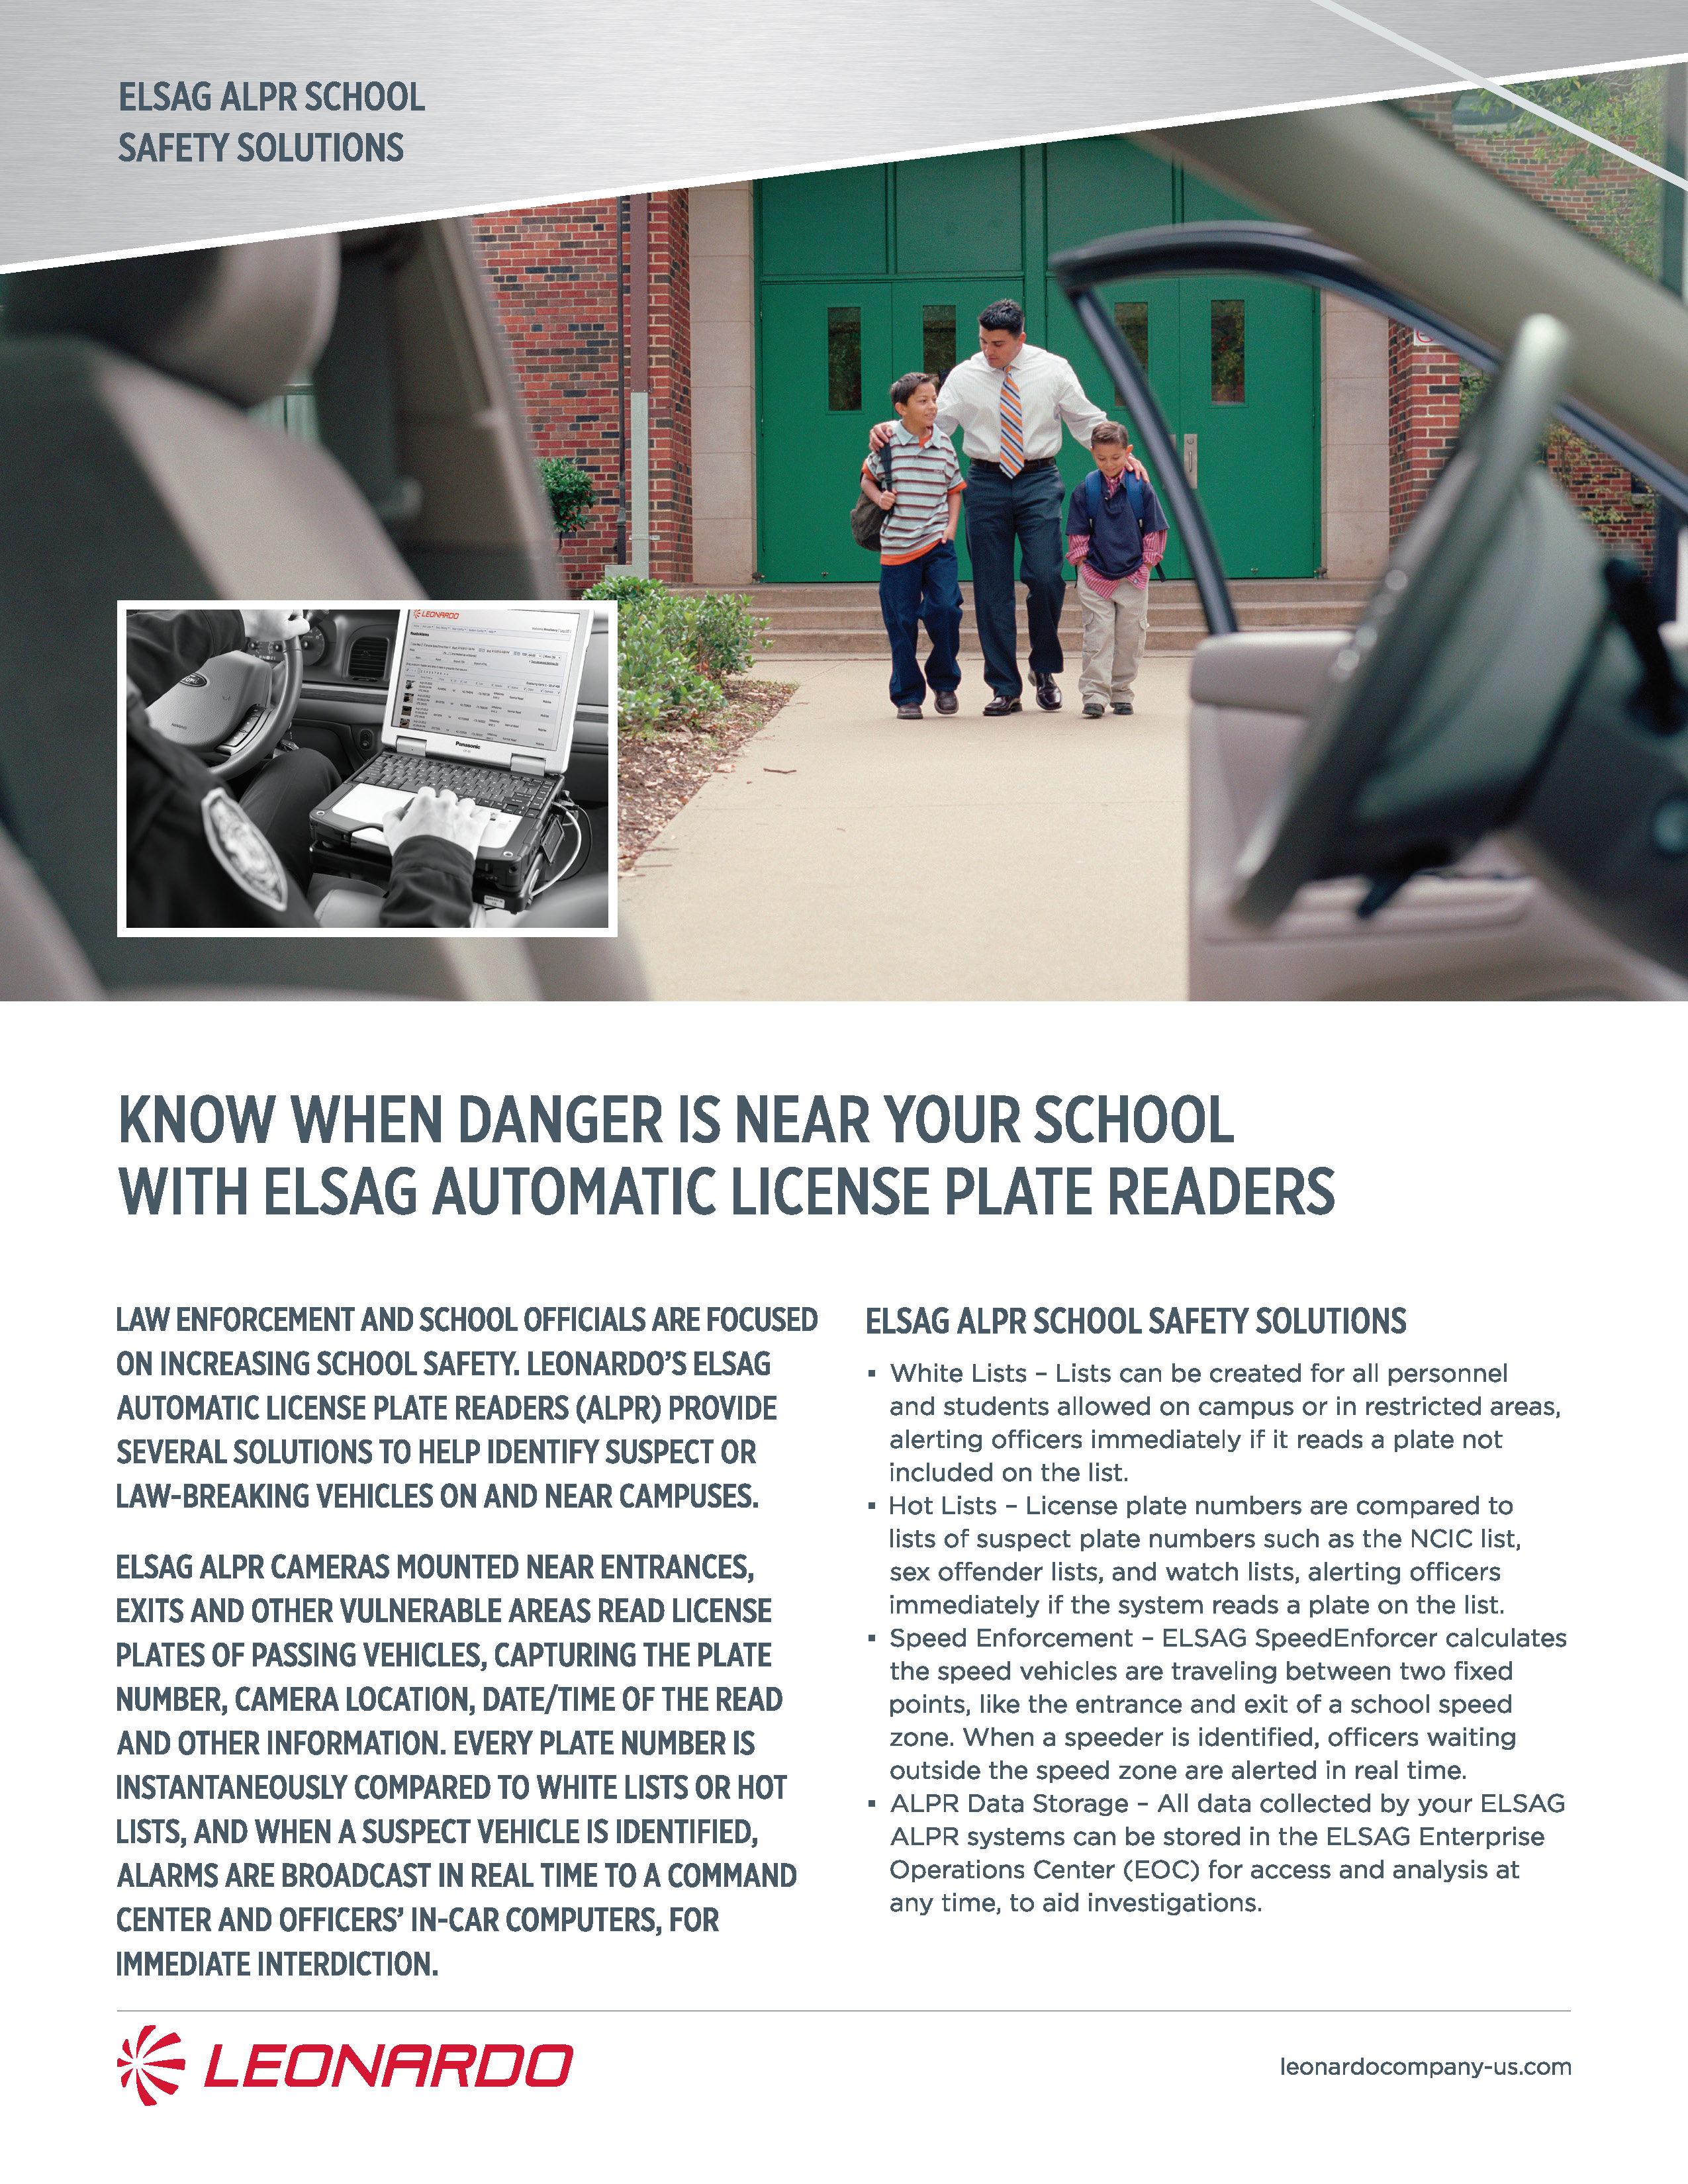 ELSAG fixed plate hunter for school safety